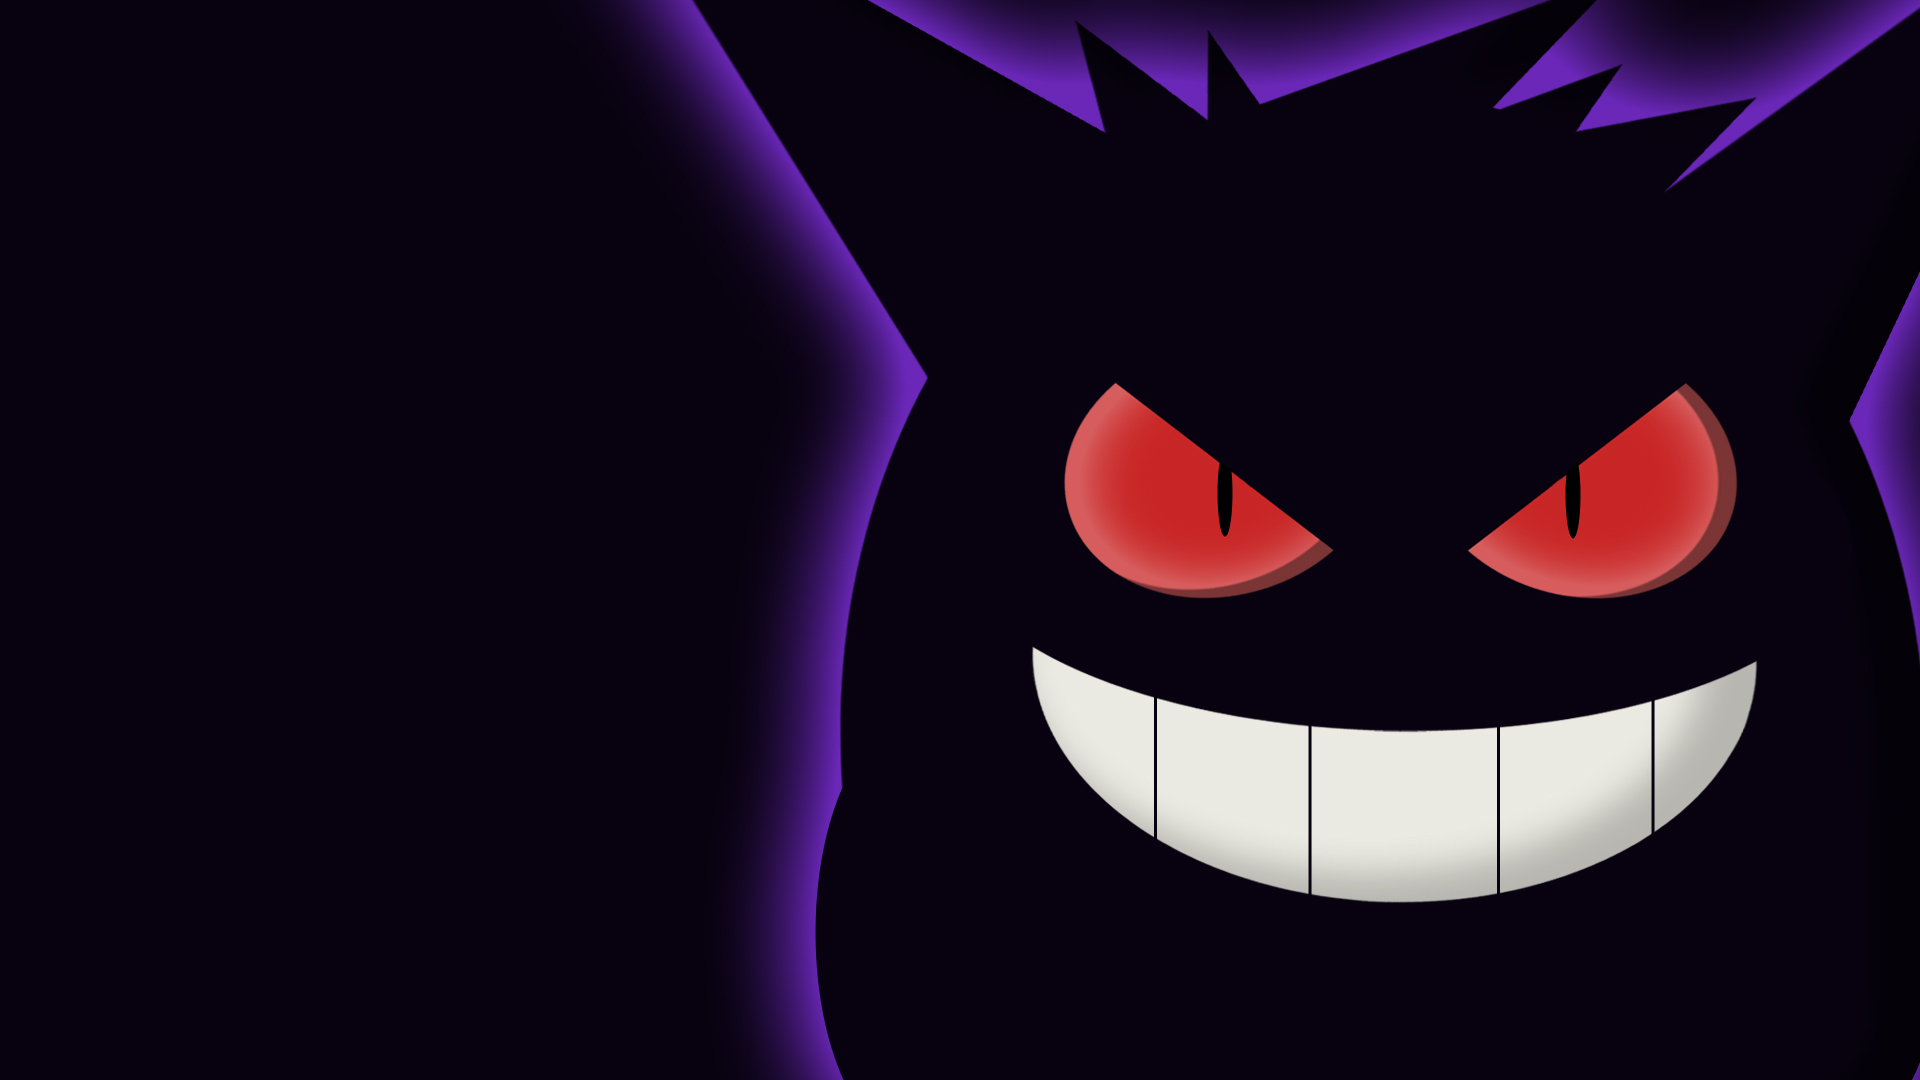 Gengar Wallpaper by w3ph 1920x1080